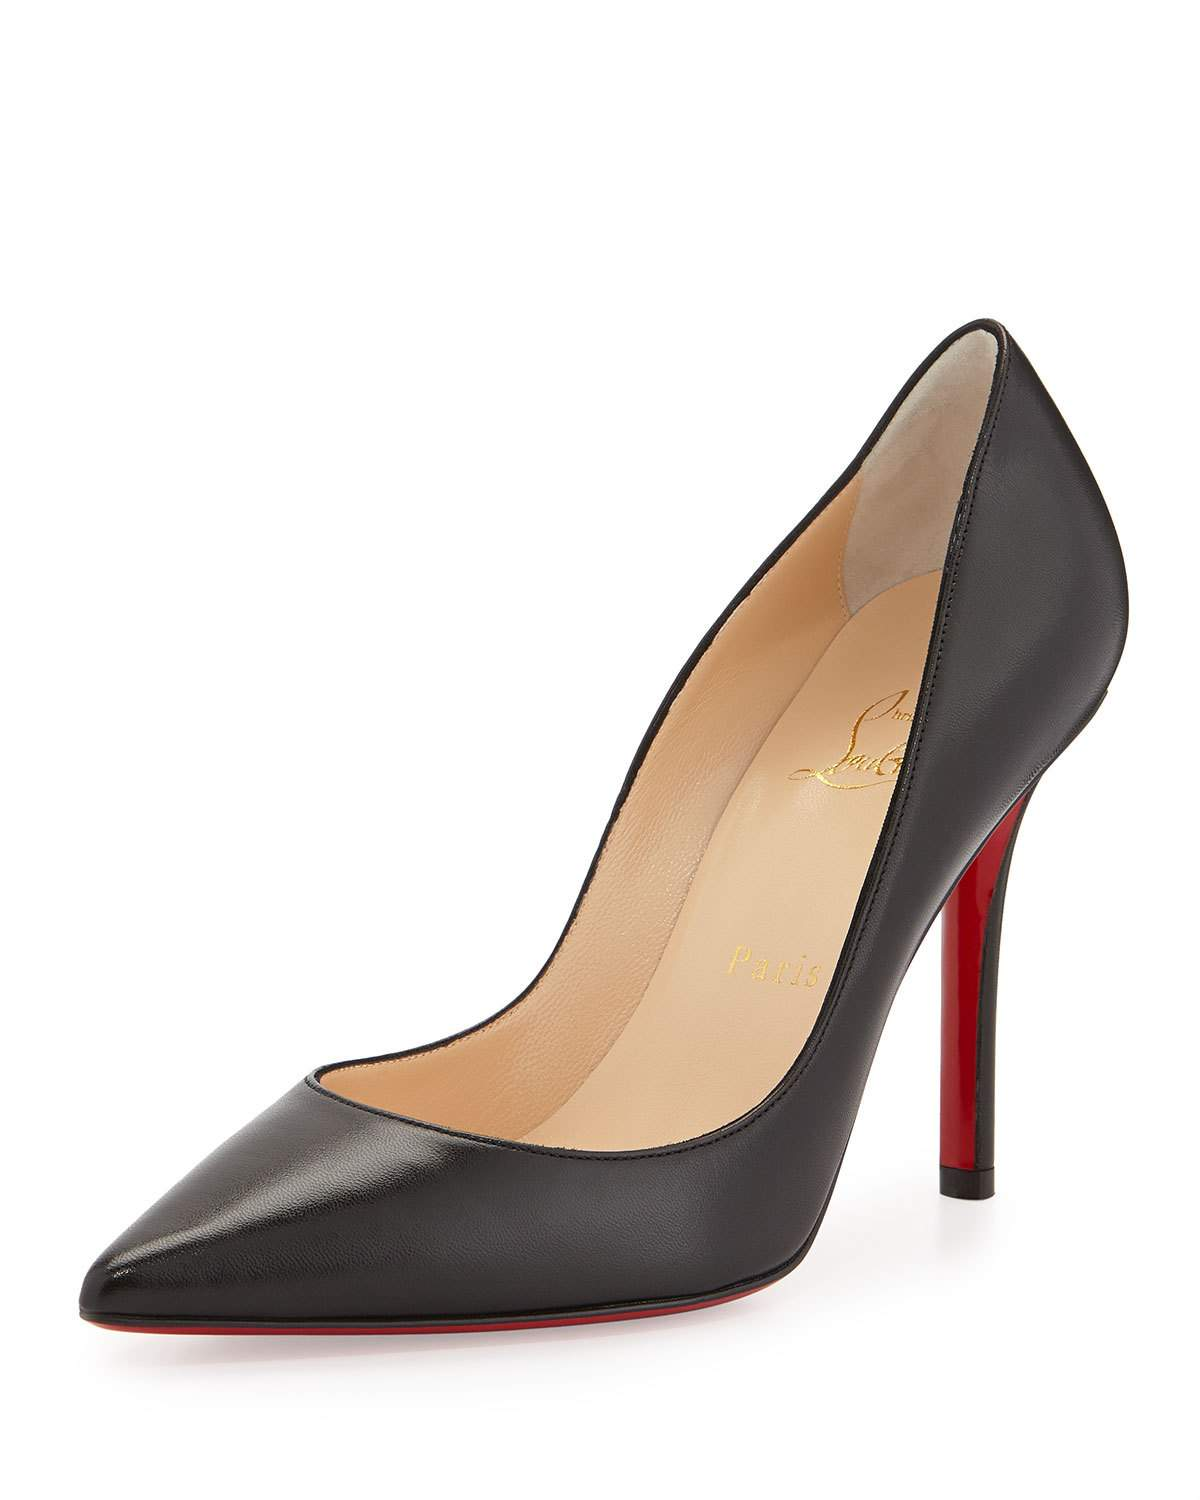 6ef3553a55ca Christian Louboutin Apostrophy Pointed Red-Sole Pump